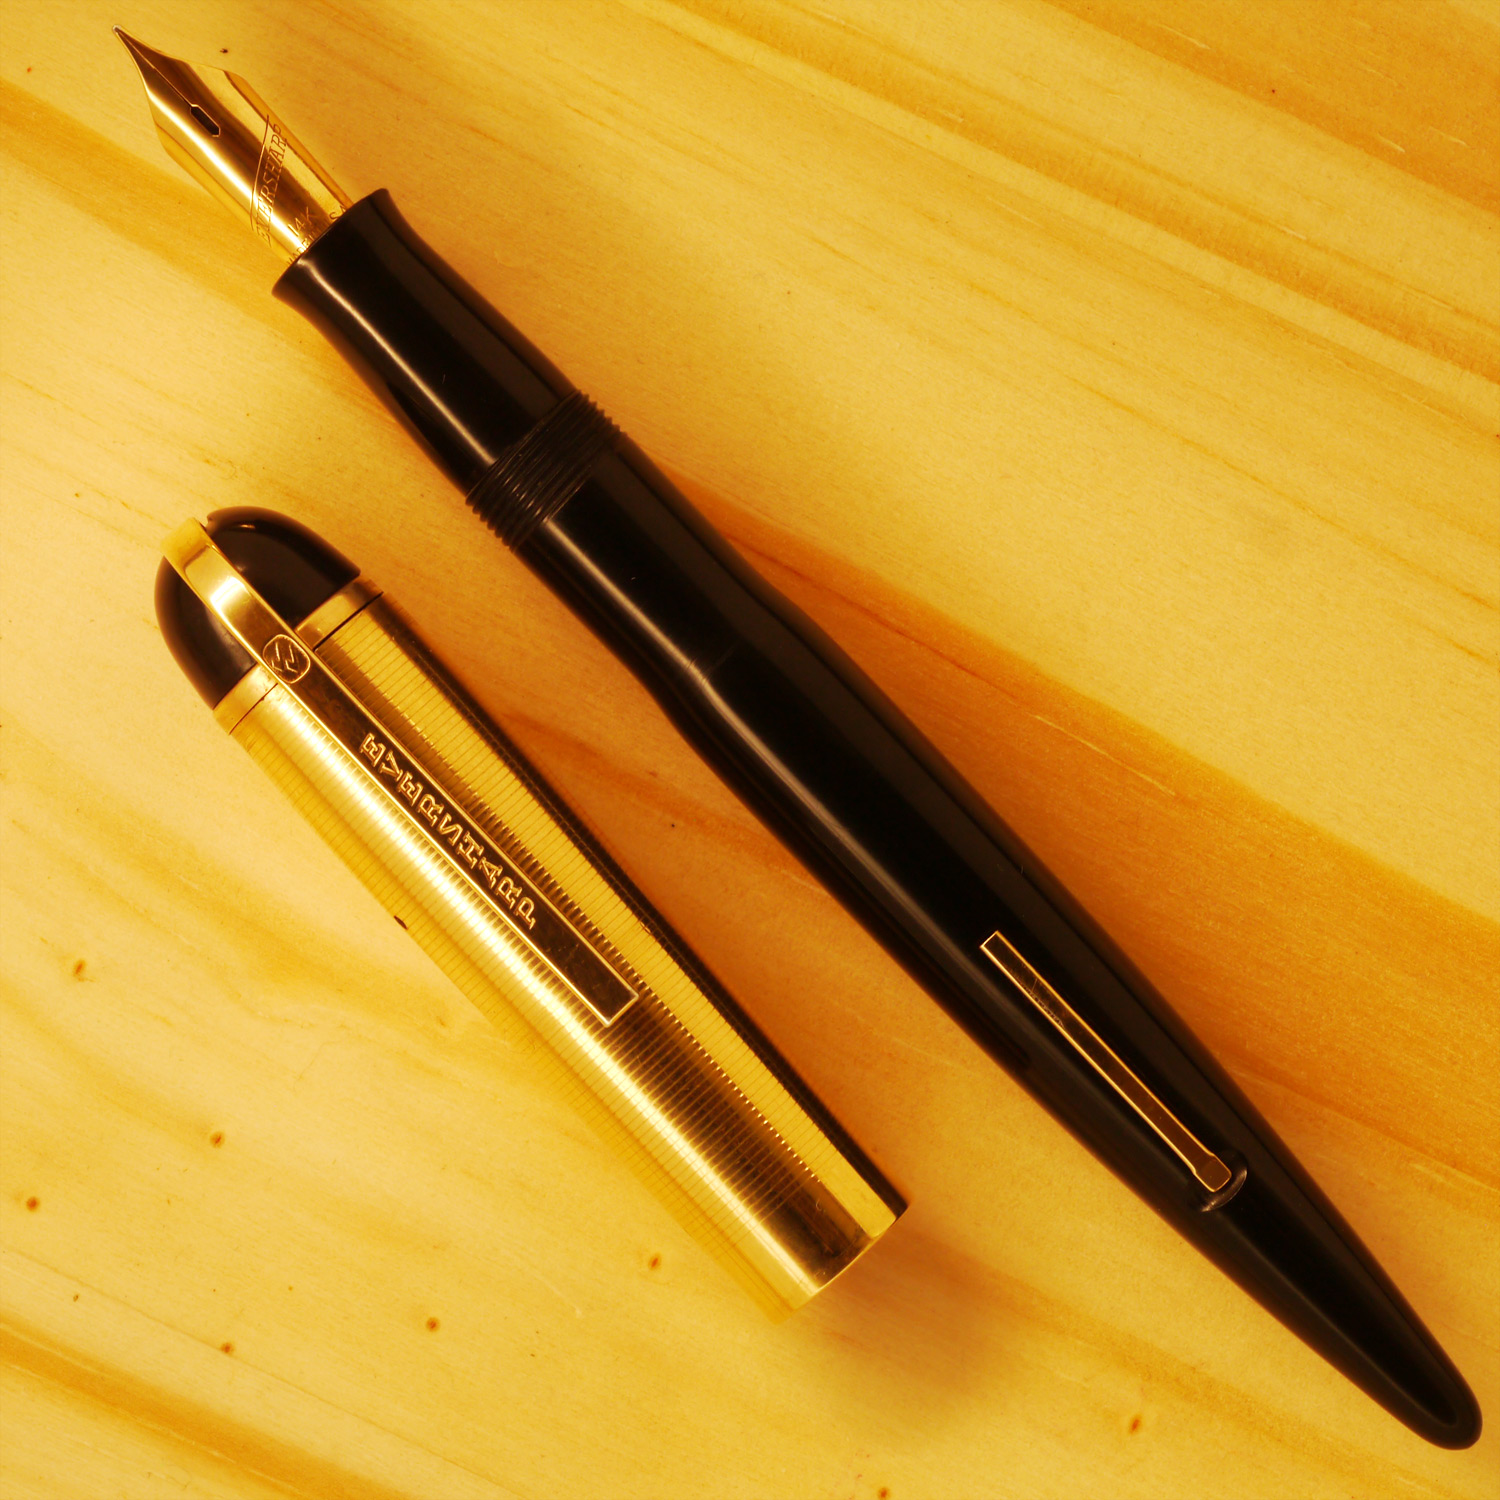 Eversharp Skyline, restored and ready to write